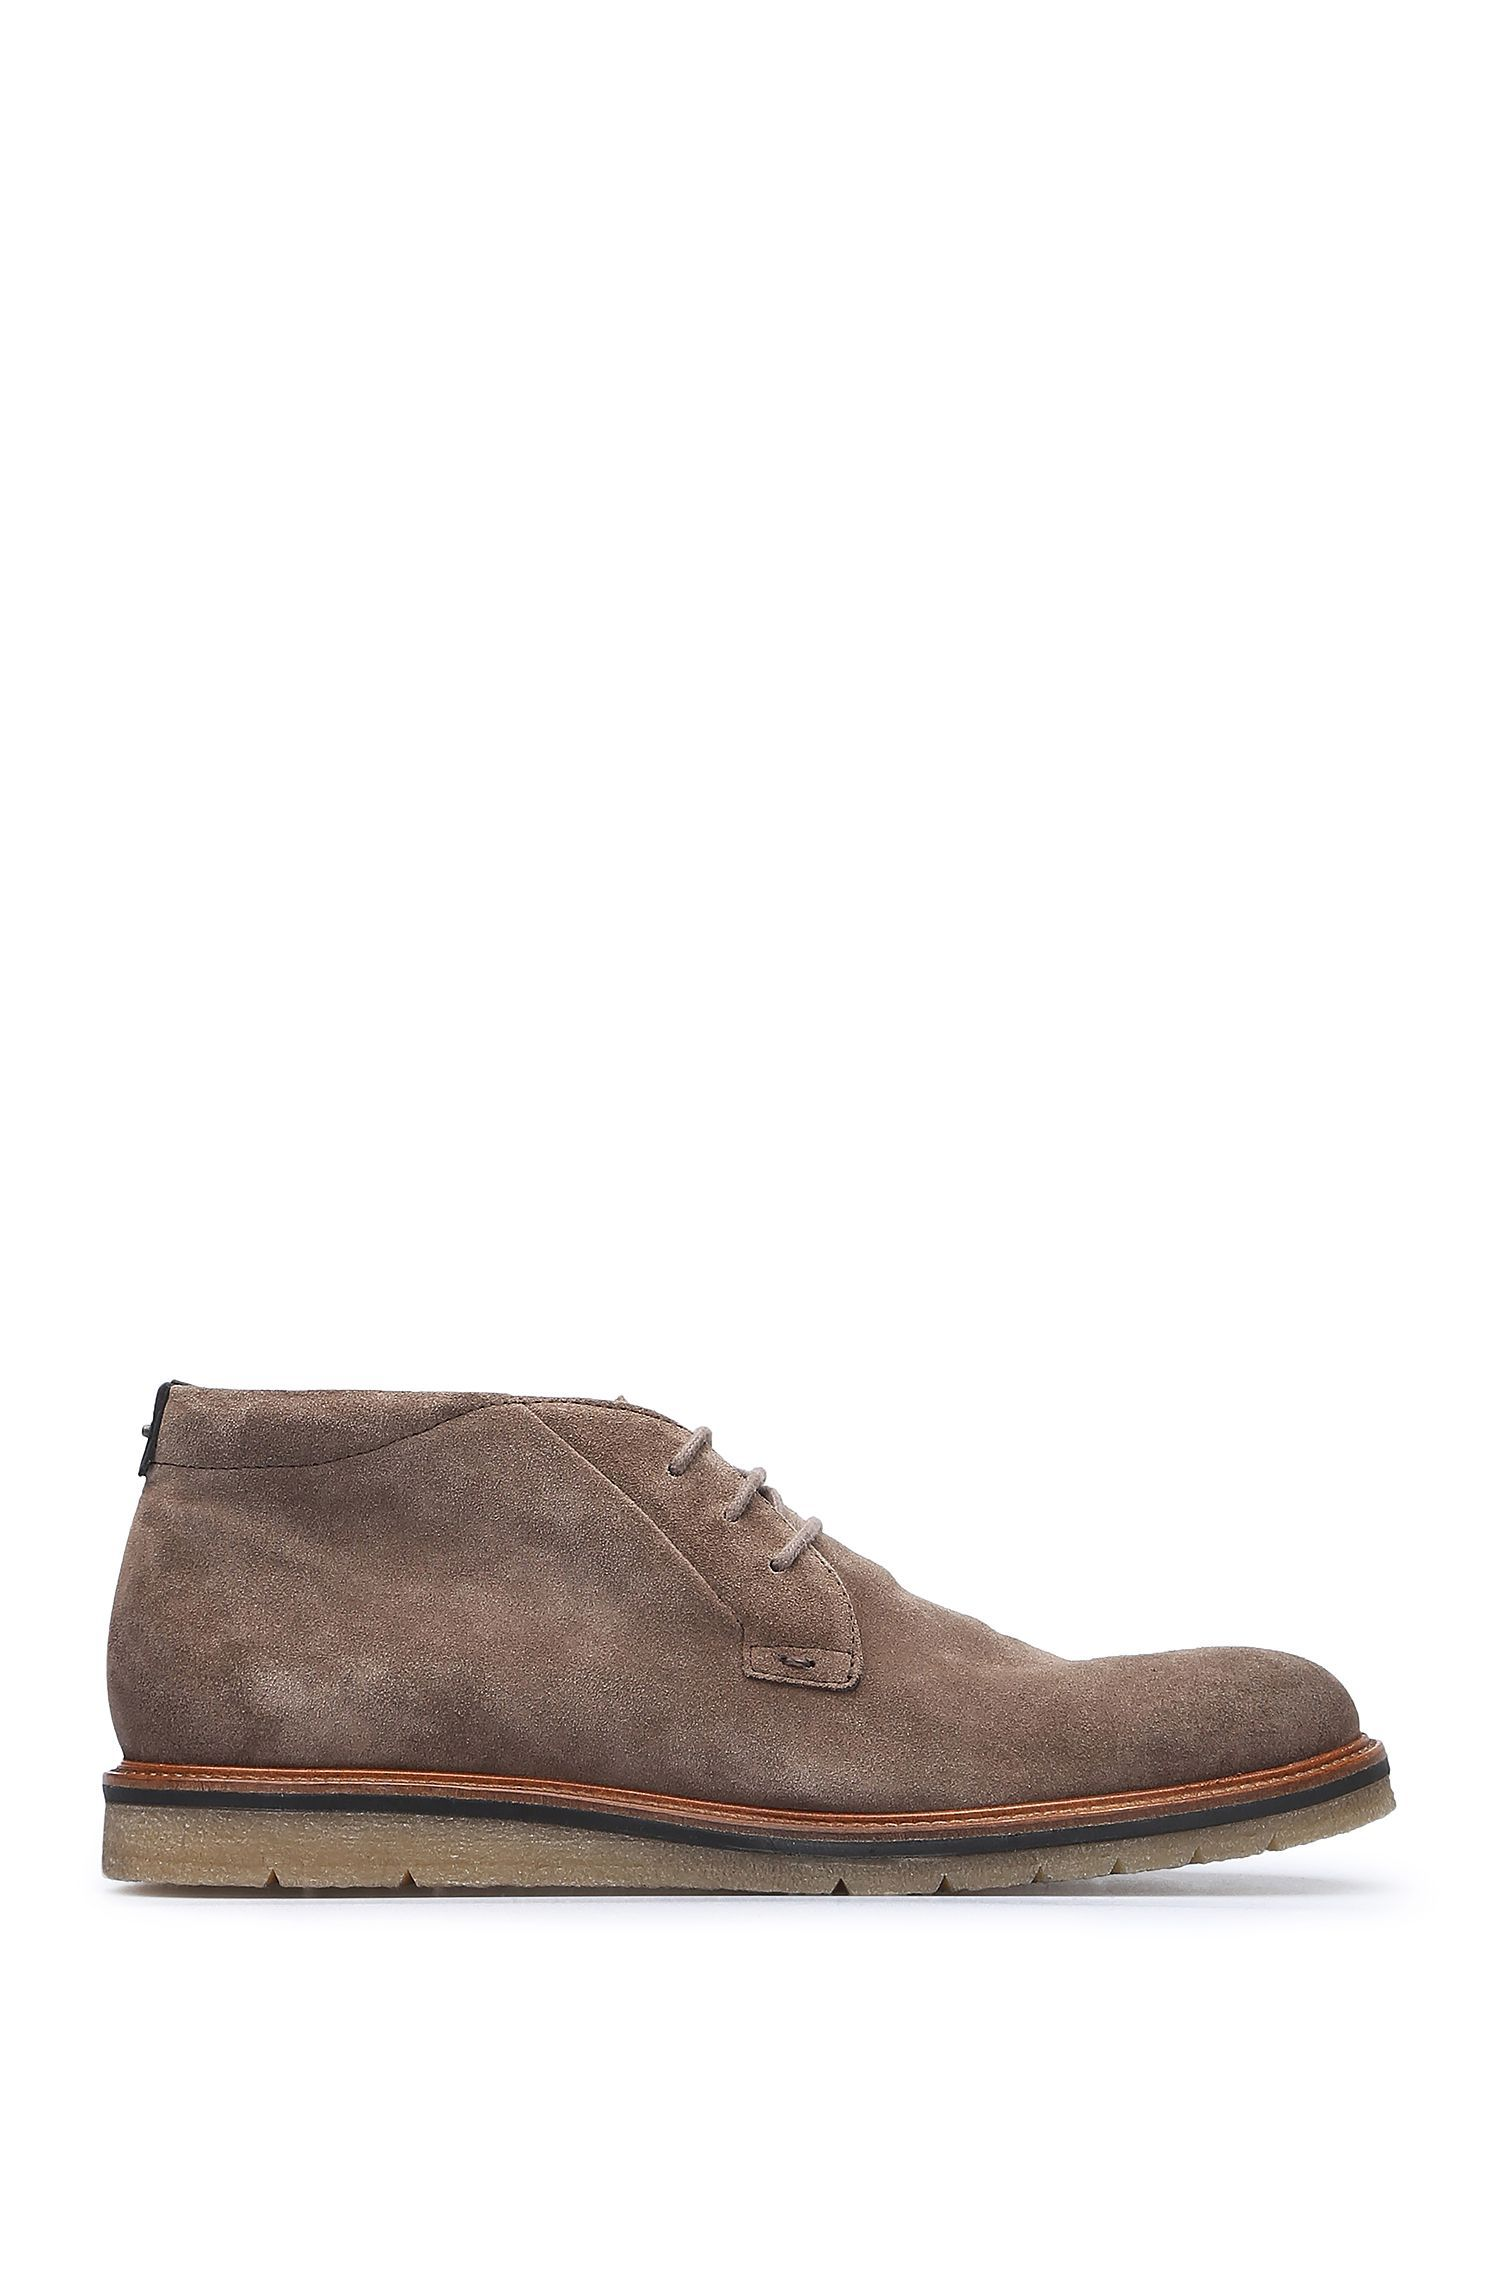 Desert boots in vintage-style suede: 'Tuned_Desb_sd'